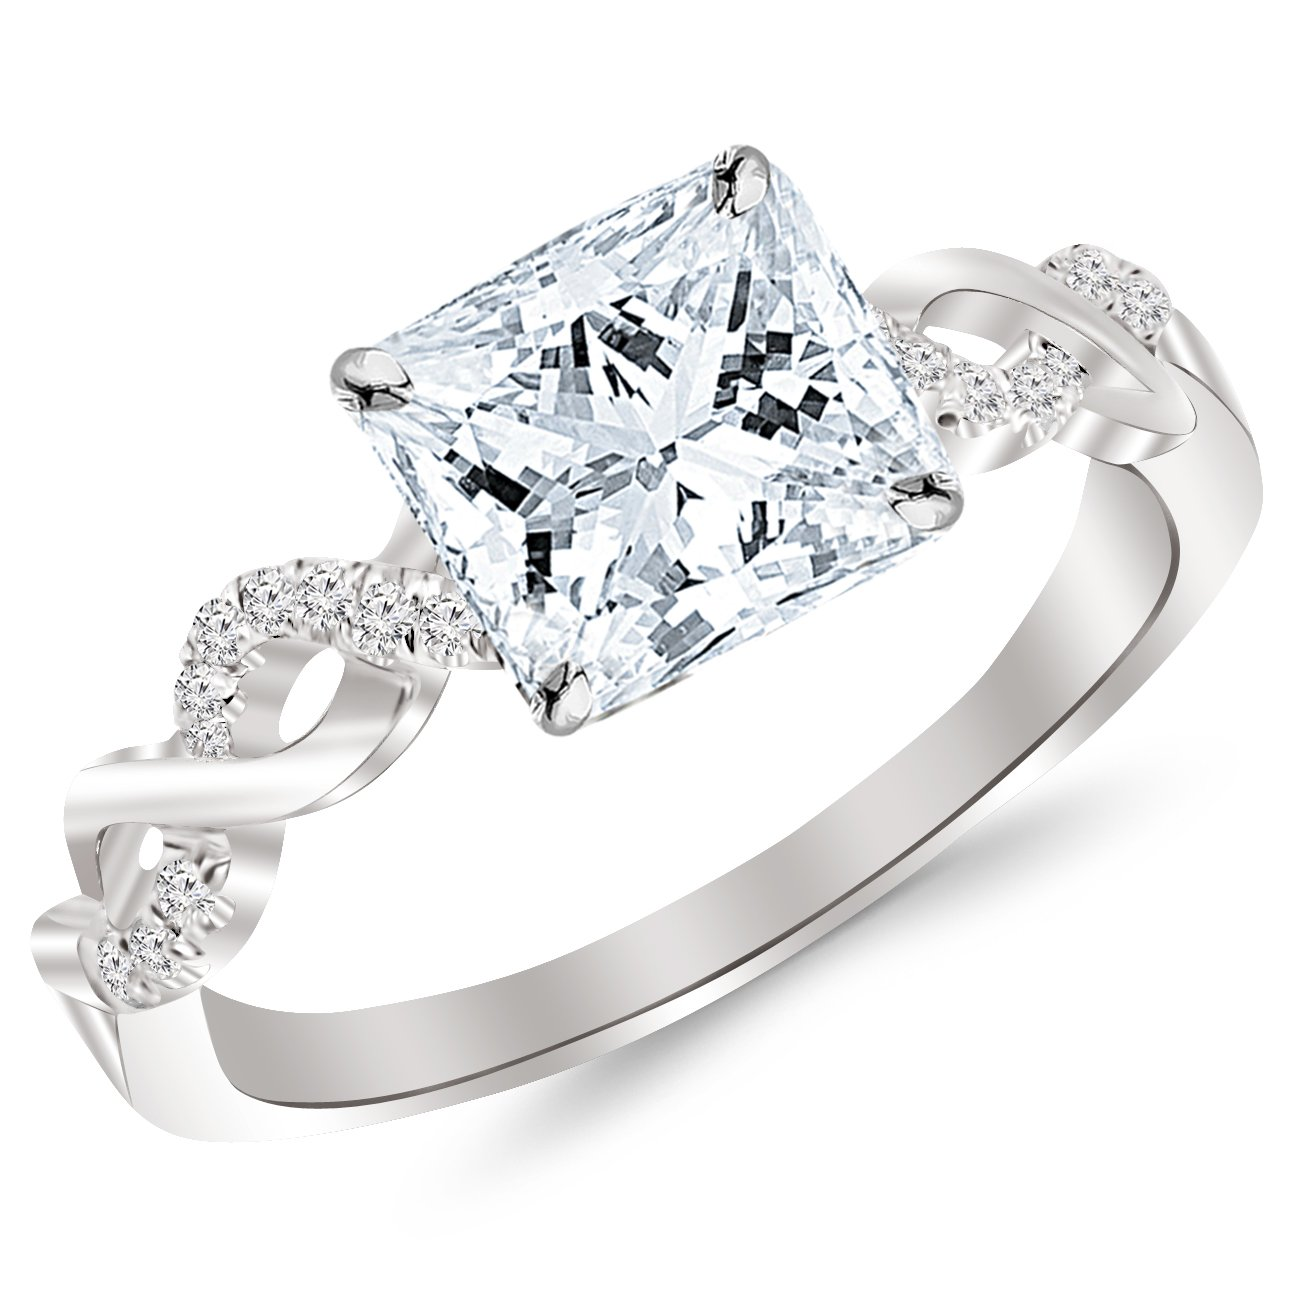 White Gold Curving Split Shank Diamond Engagement Ring with a 0.5 Carat GIA Certified Princess Cut E Color VS1 Clarity Center Stone